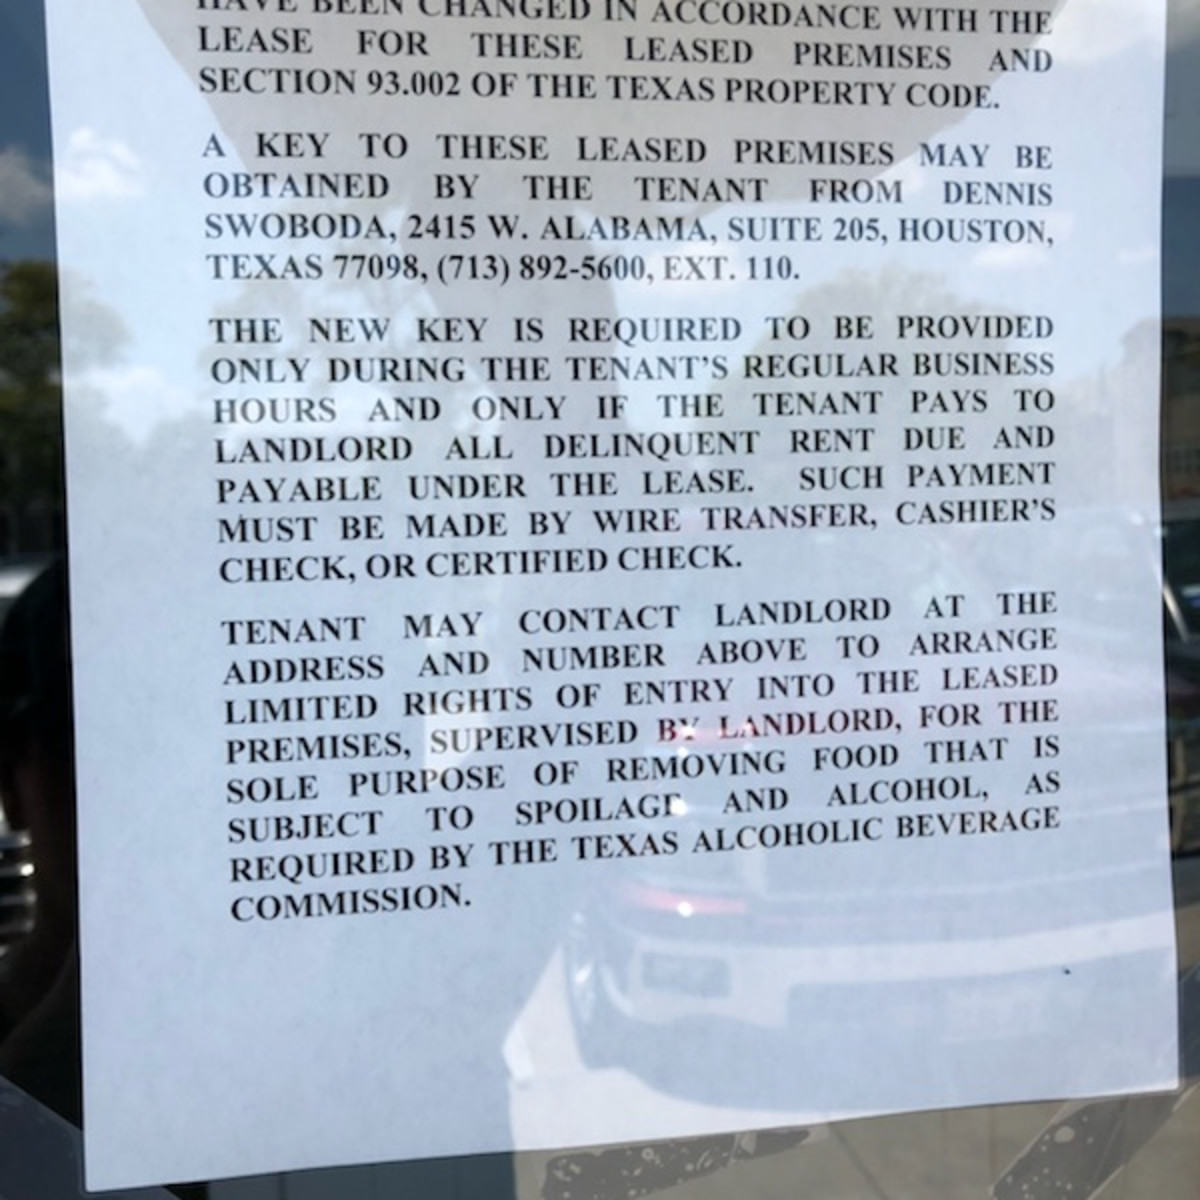 Star Fish locked out notice